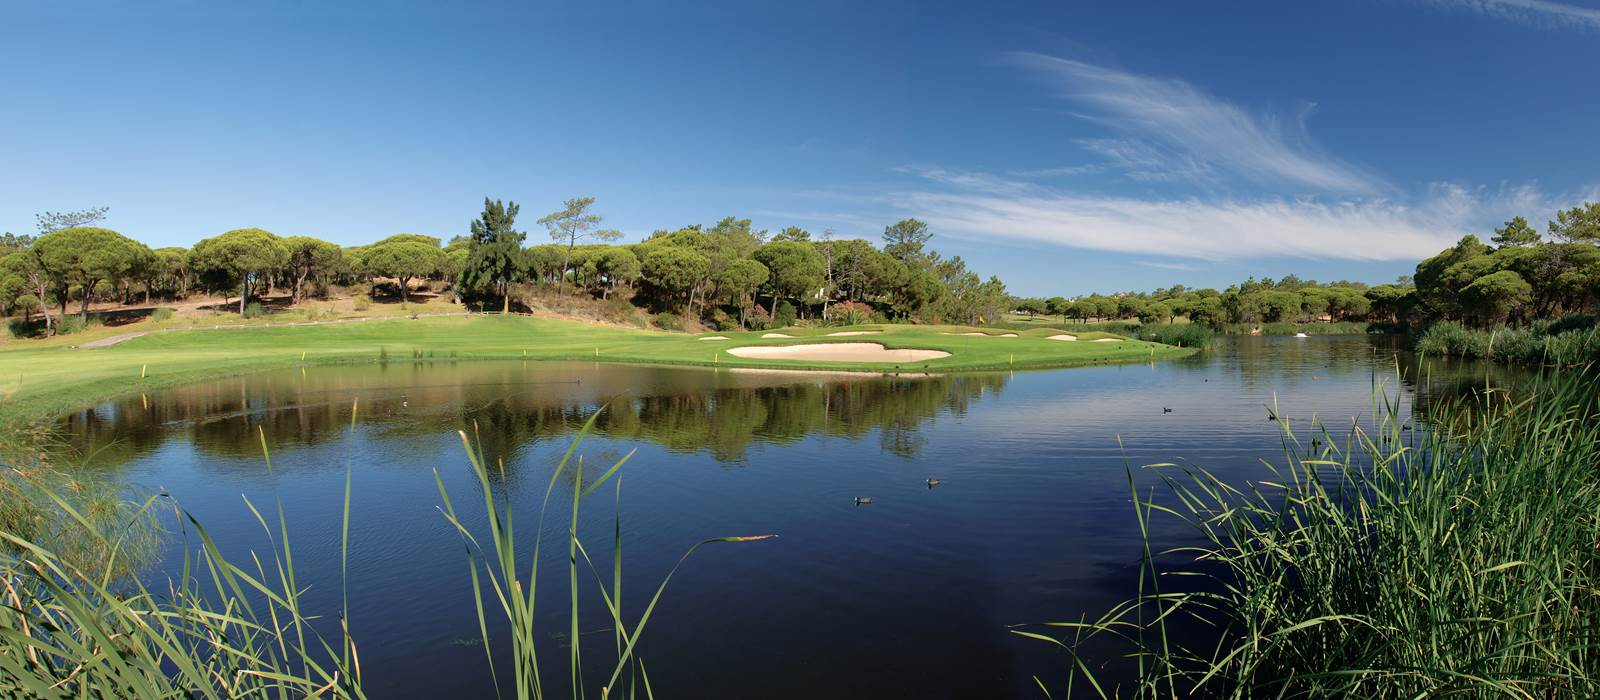 18th Hole at San Lorenzo Golf Course, Algarve